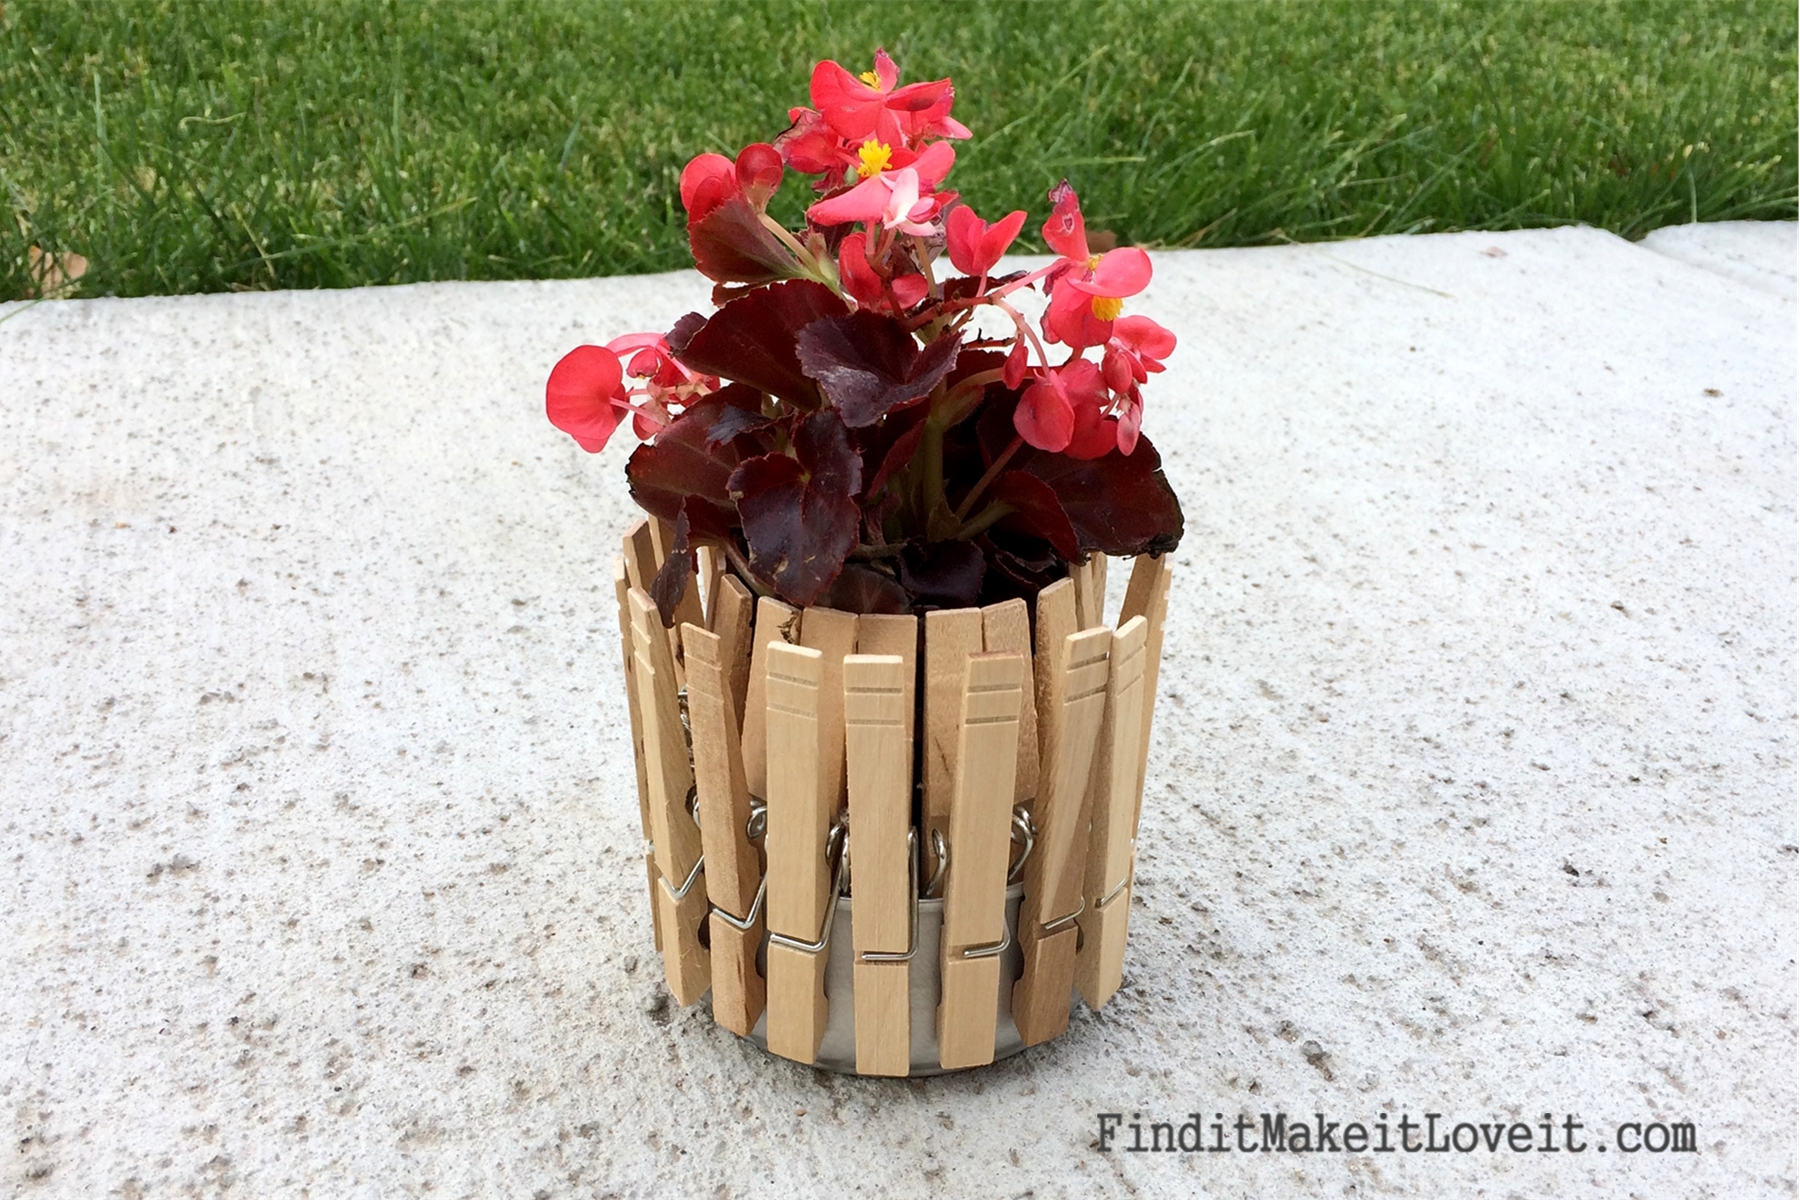 fun picture ideas for instagram - creative plant pots fresh living 8 Find it Make it